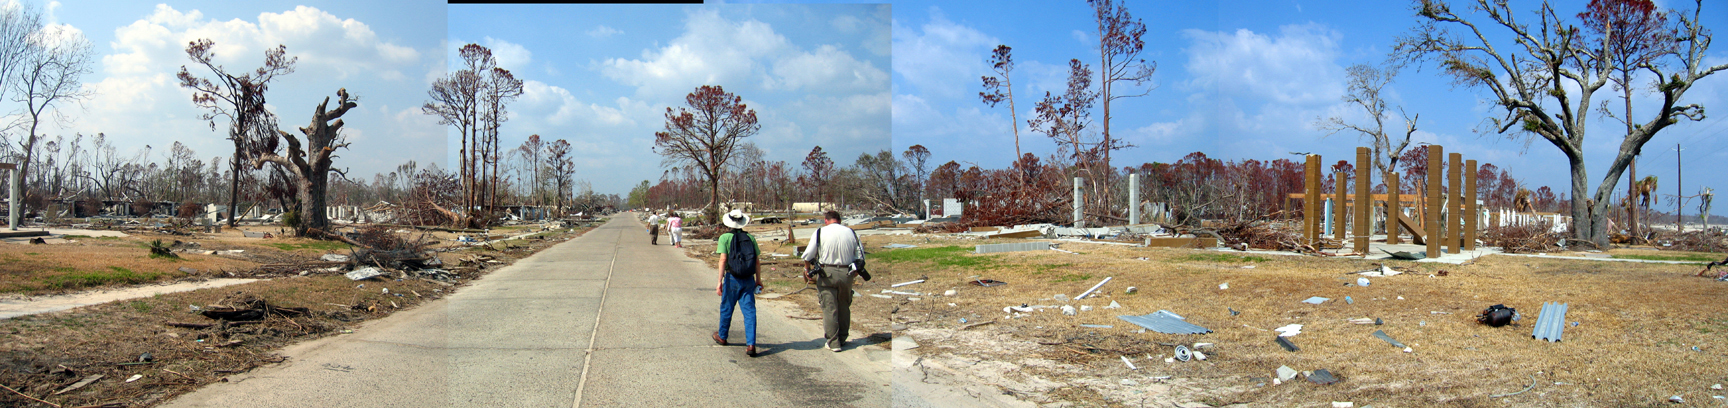 Waveland_Mississippi.Form_Base_Code_Implimentation.Walkable.Hurricane_Katrina_Relief.Robert_Orr_&_Associates.Architecture.Landscape_Architecture.New_Urbanism.Coleman_Panorama_North.jpg